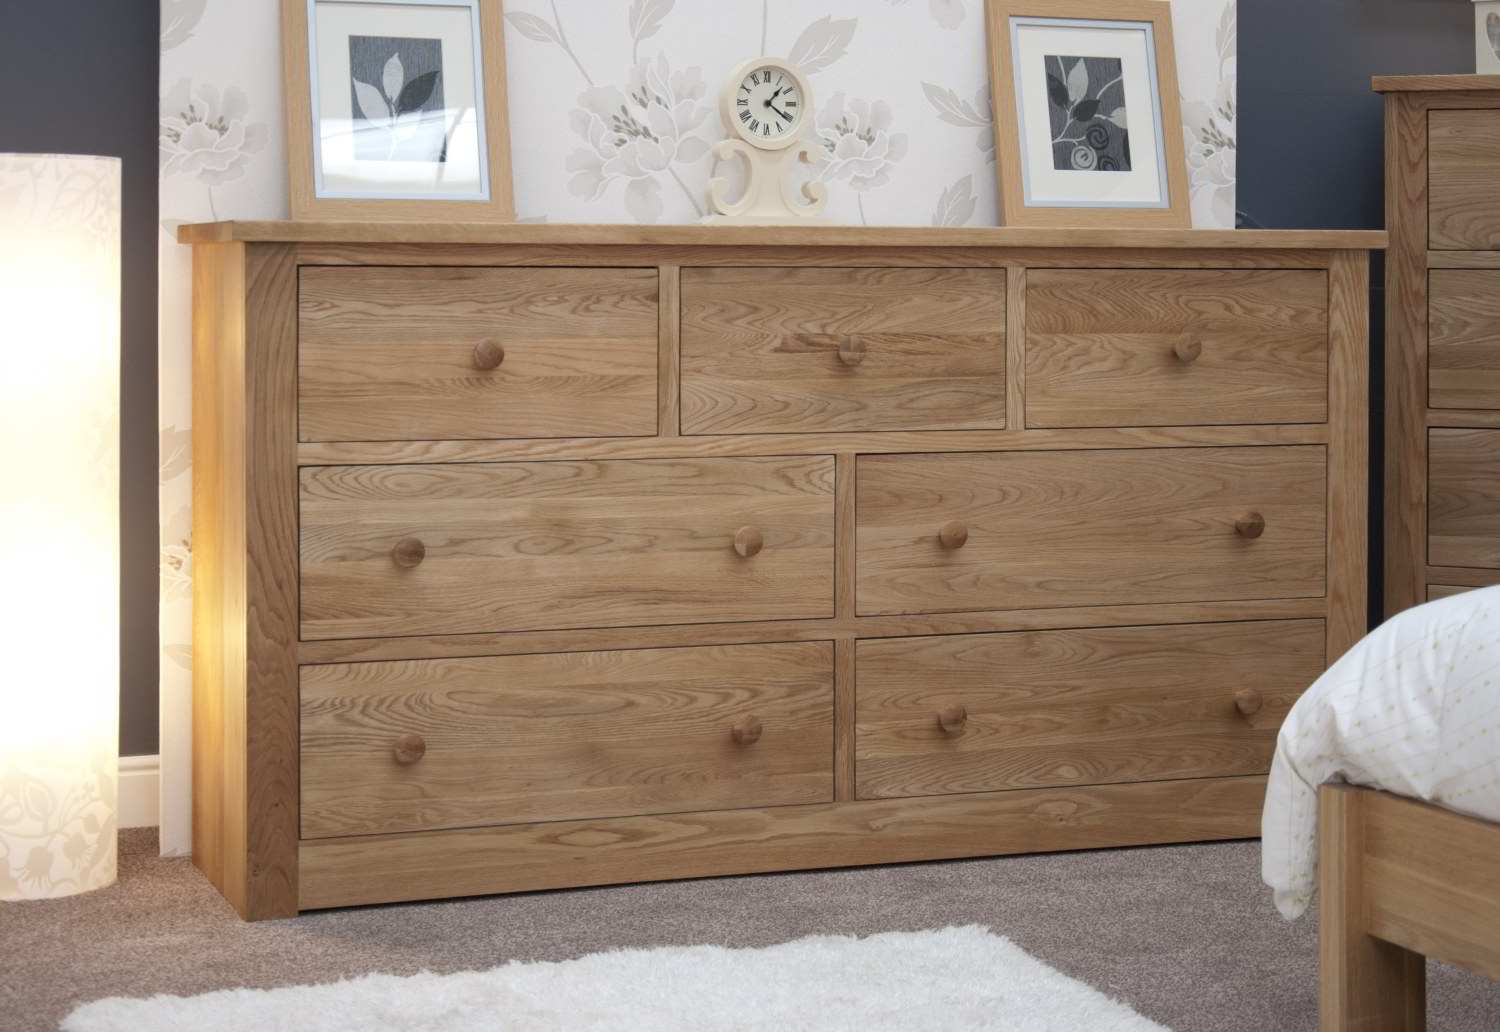 Kingston solid modern oak bedroom furniture deep wide for Bedroom furniture chest of drawers